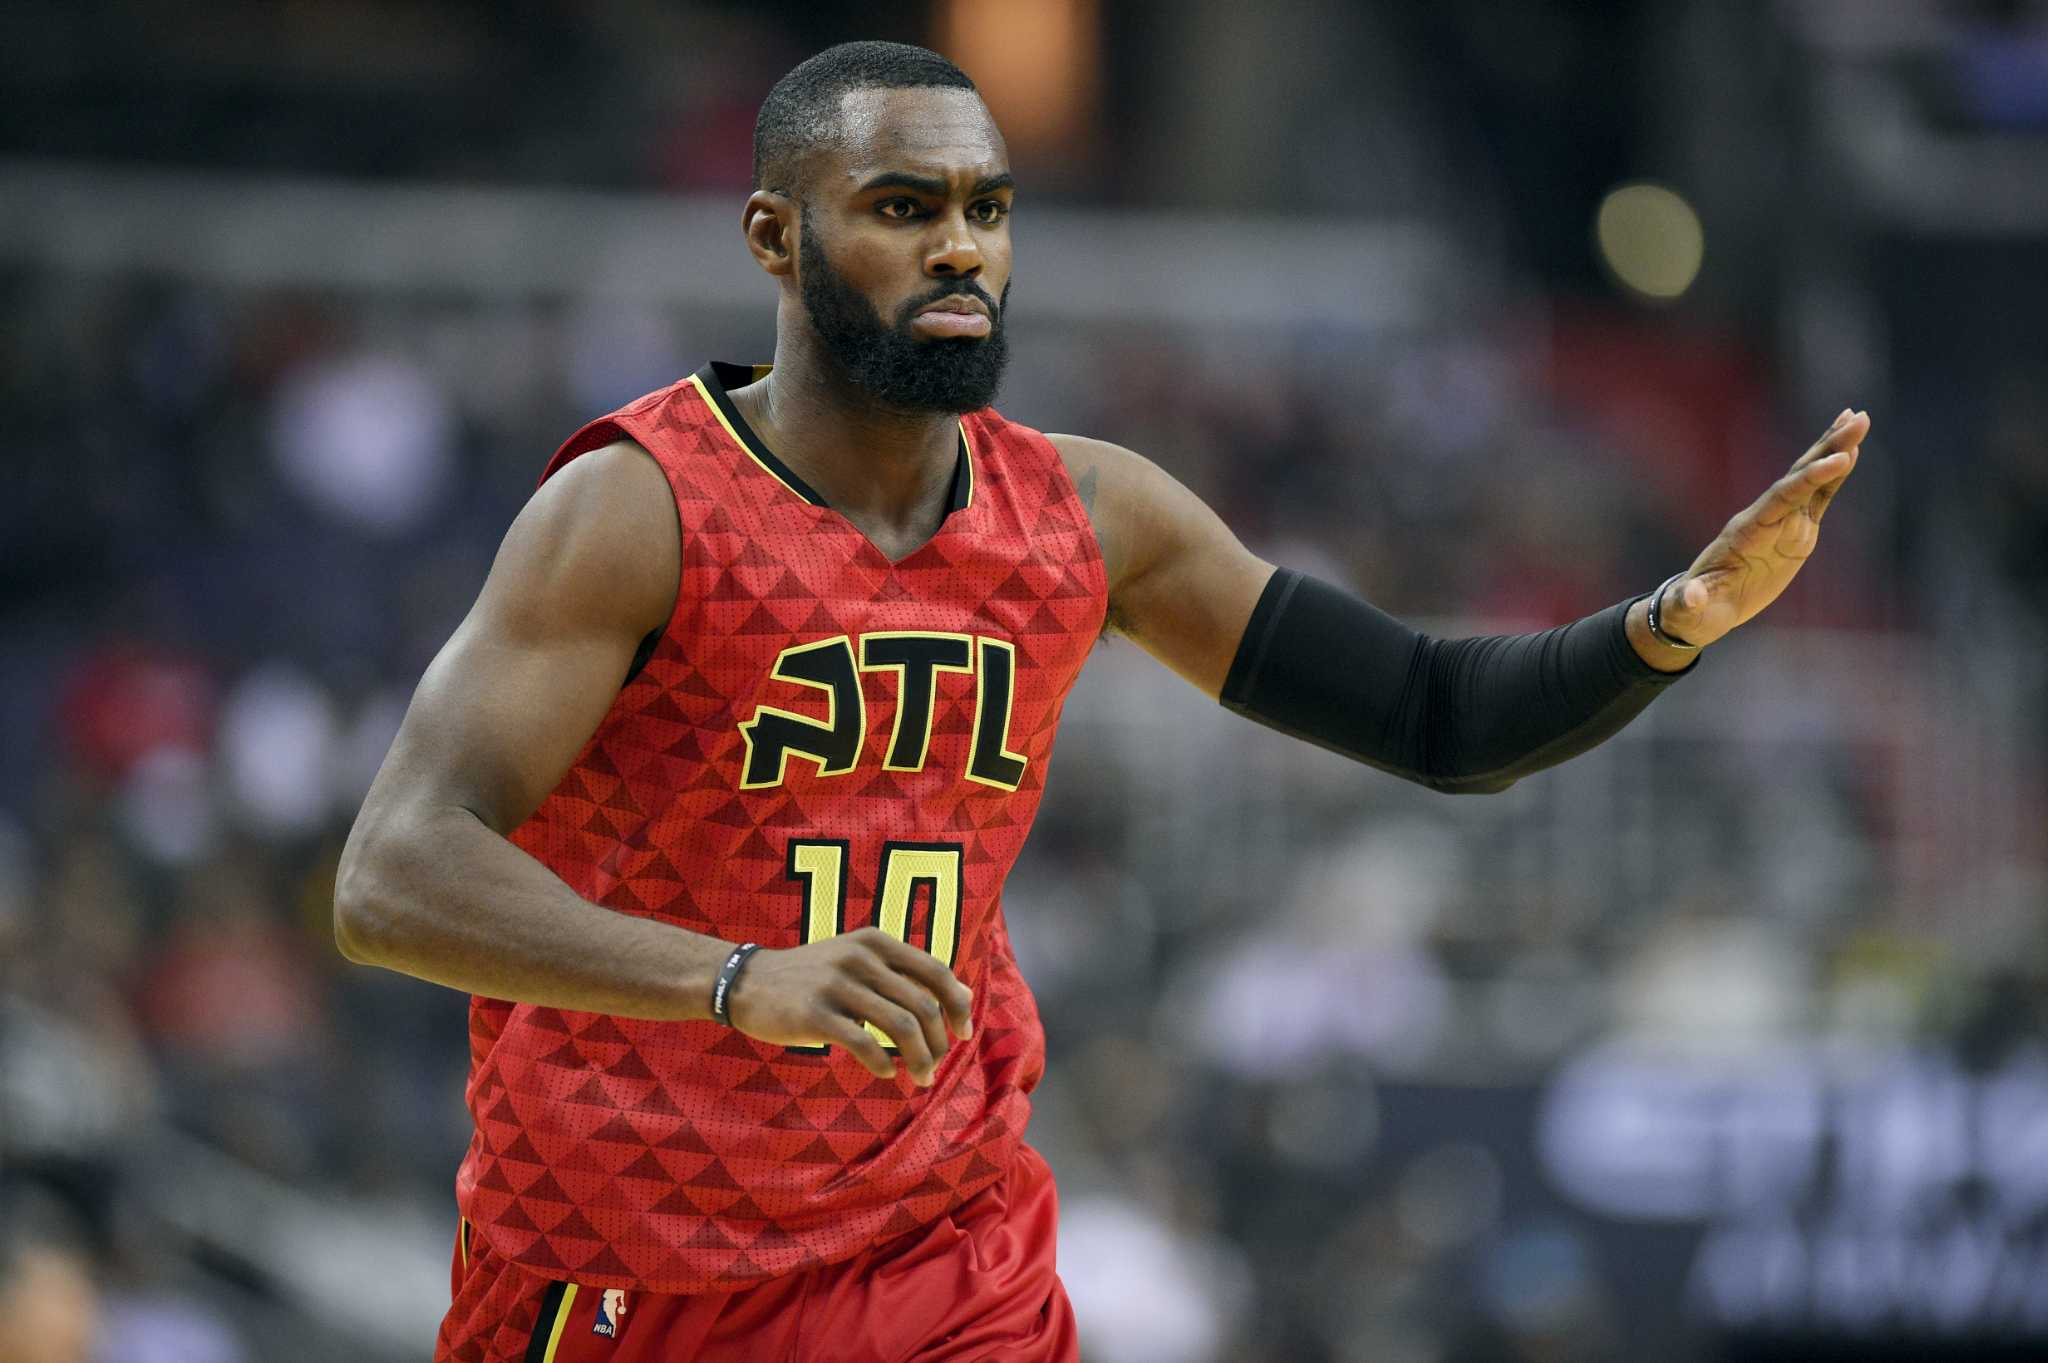 bd1d91a90672 NBA notebook  Tim Hardaway Jr. surprised to be back with Knicks so quick.  The Associated Press